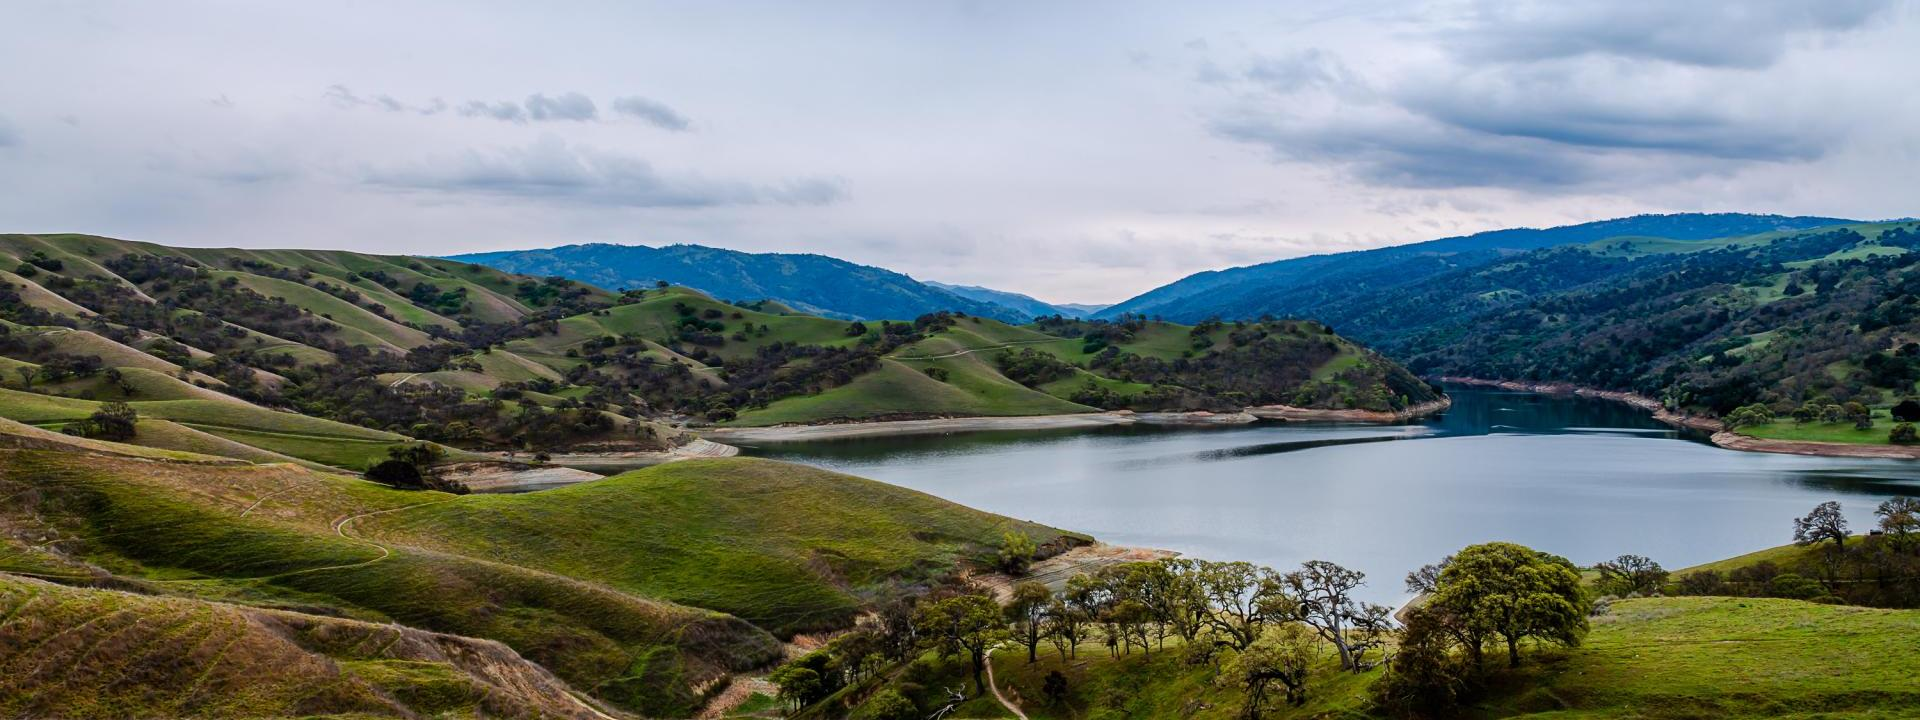 Del Valle Lake surrounded by green hills and gray sky